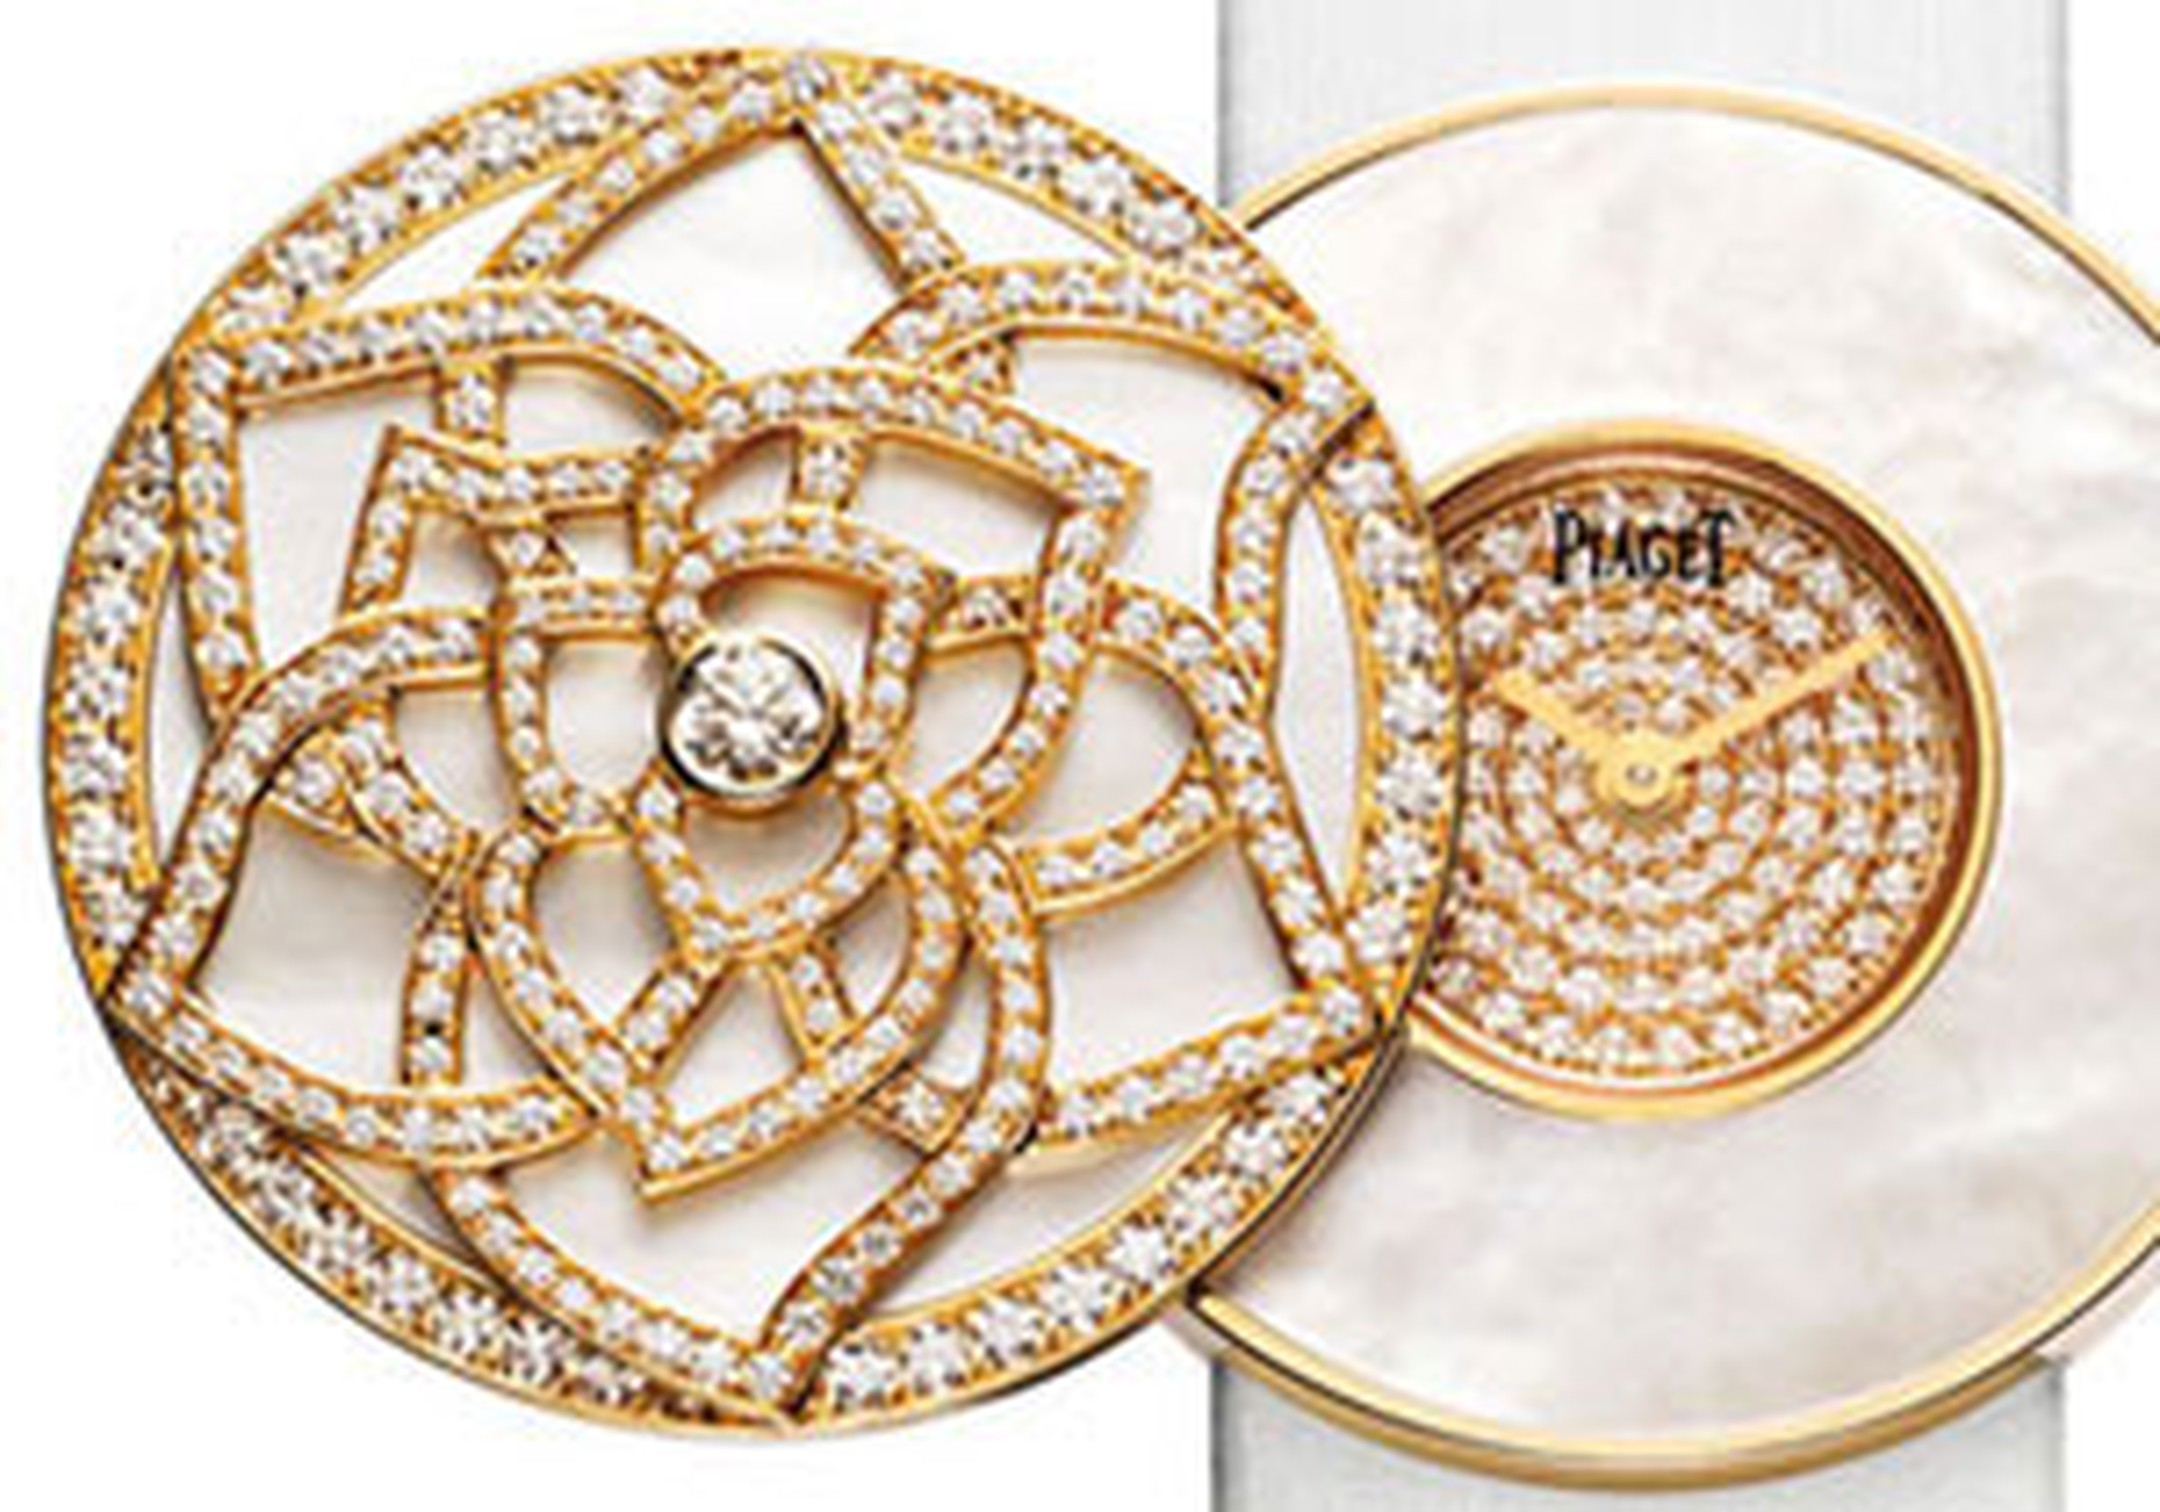 Piaget Limelight watch NEW HP